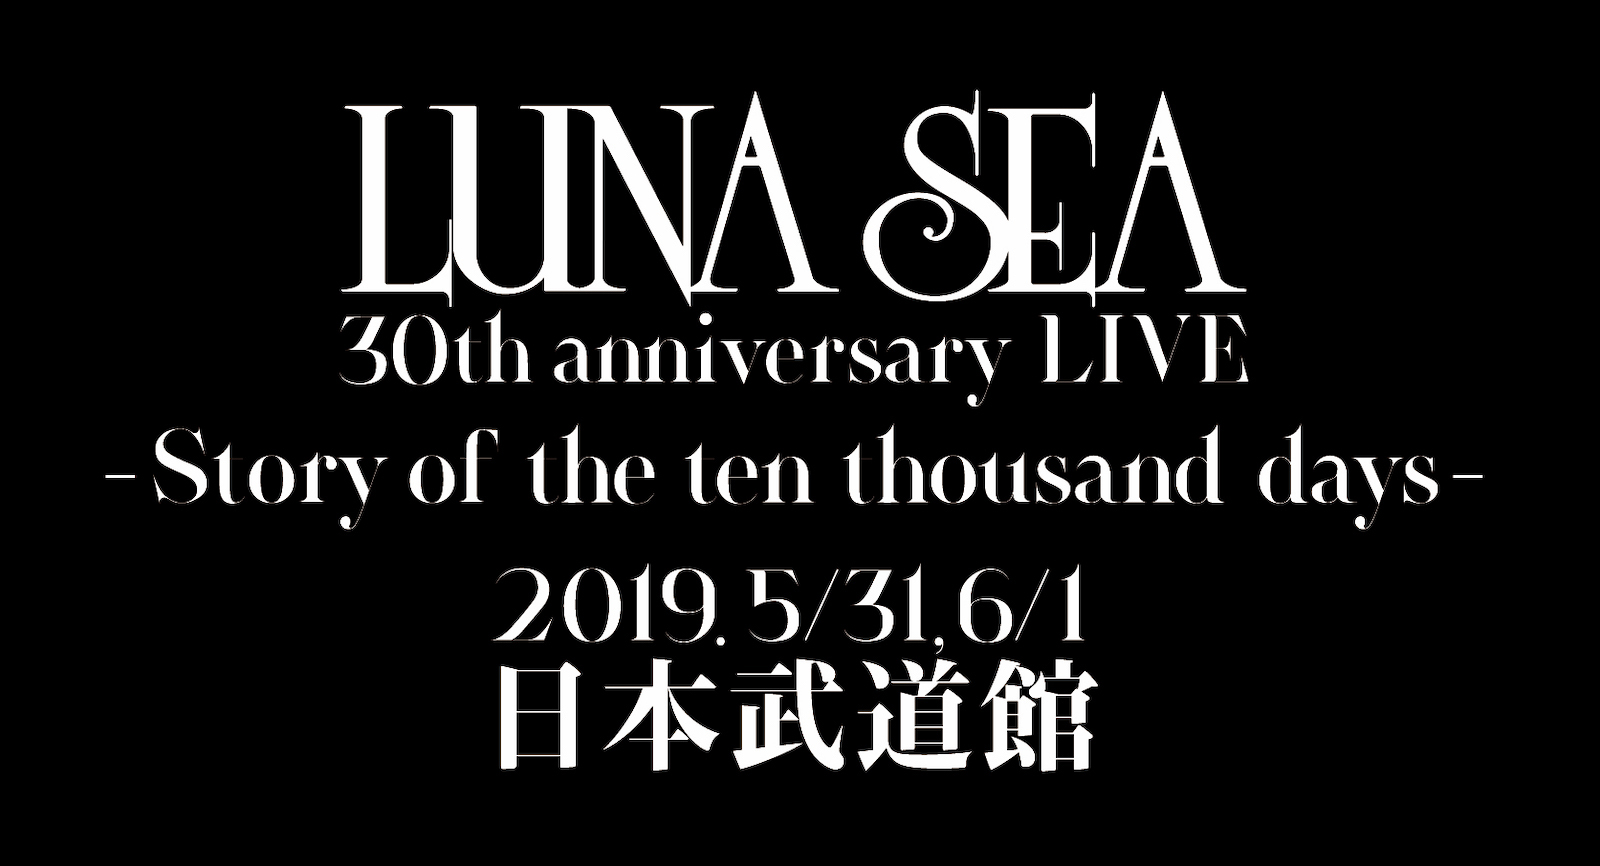 LUNA SEA 30th anniversary LIVE -Story of the ten thousand days- 日本武道館 2days